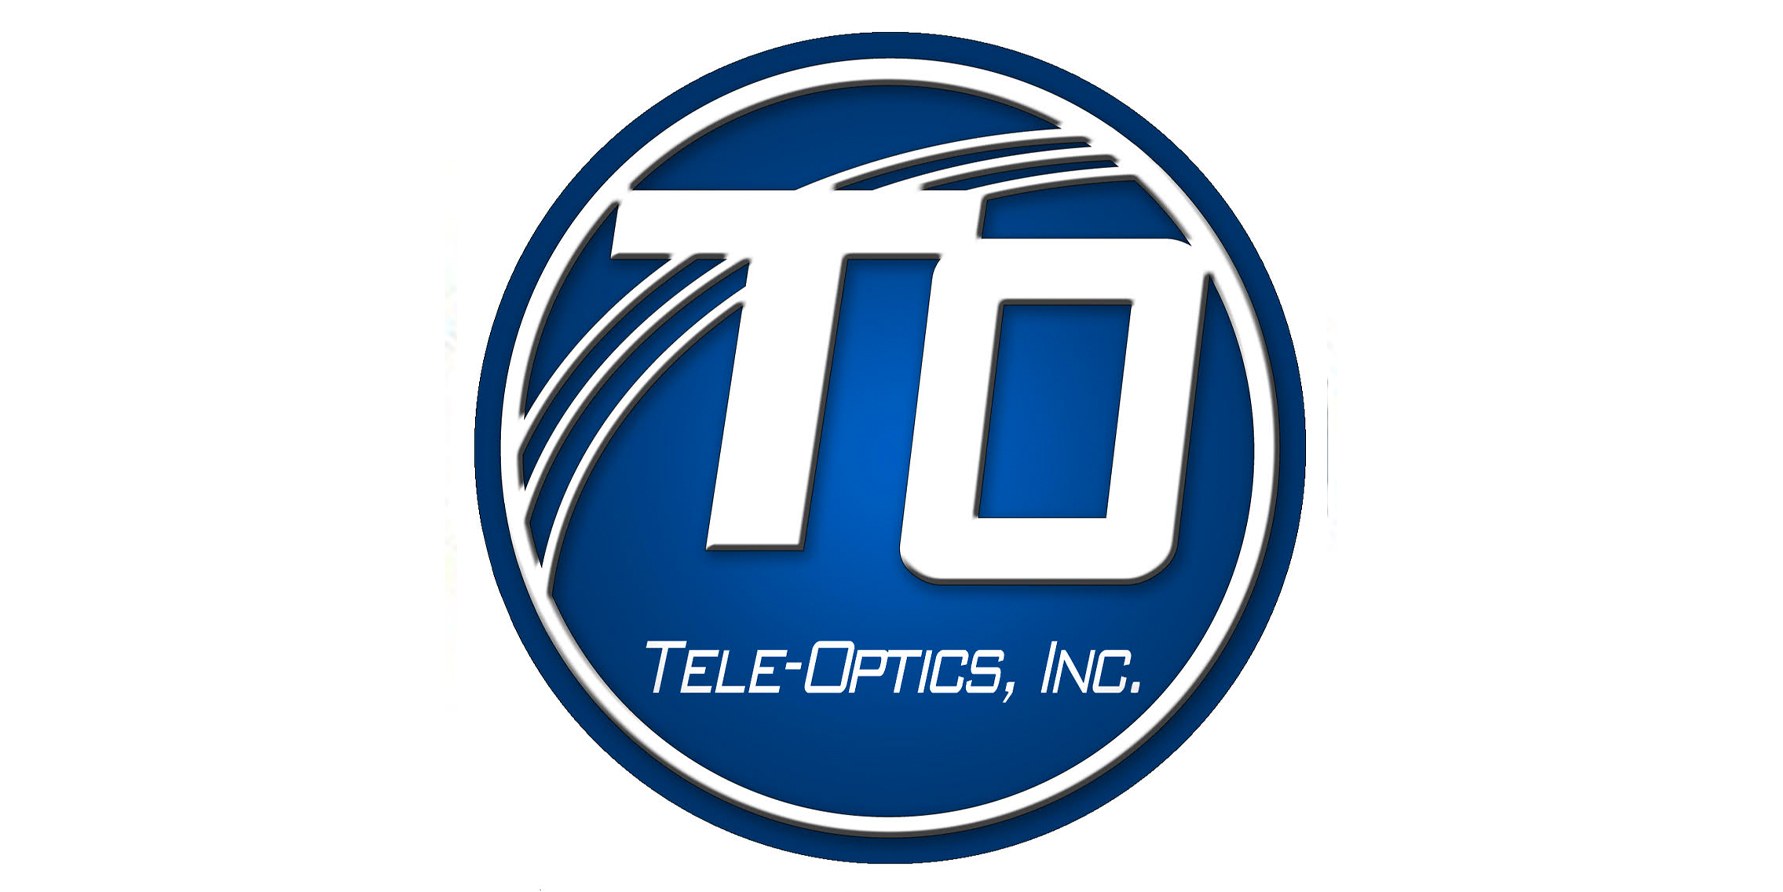 Tele-Optics Communications Inc